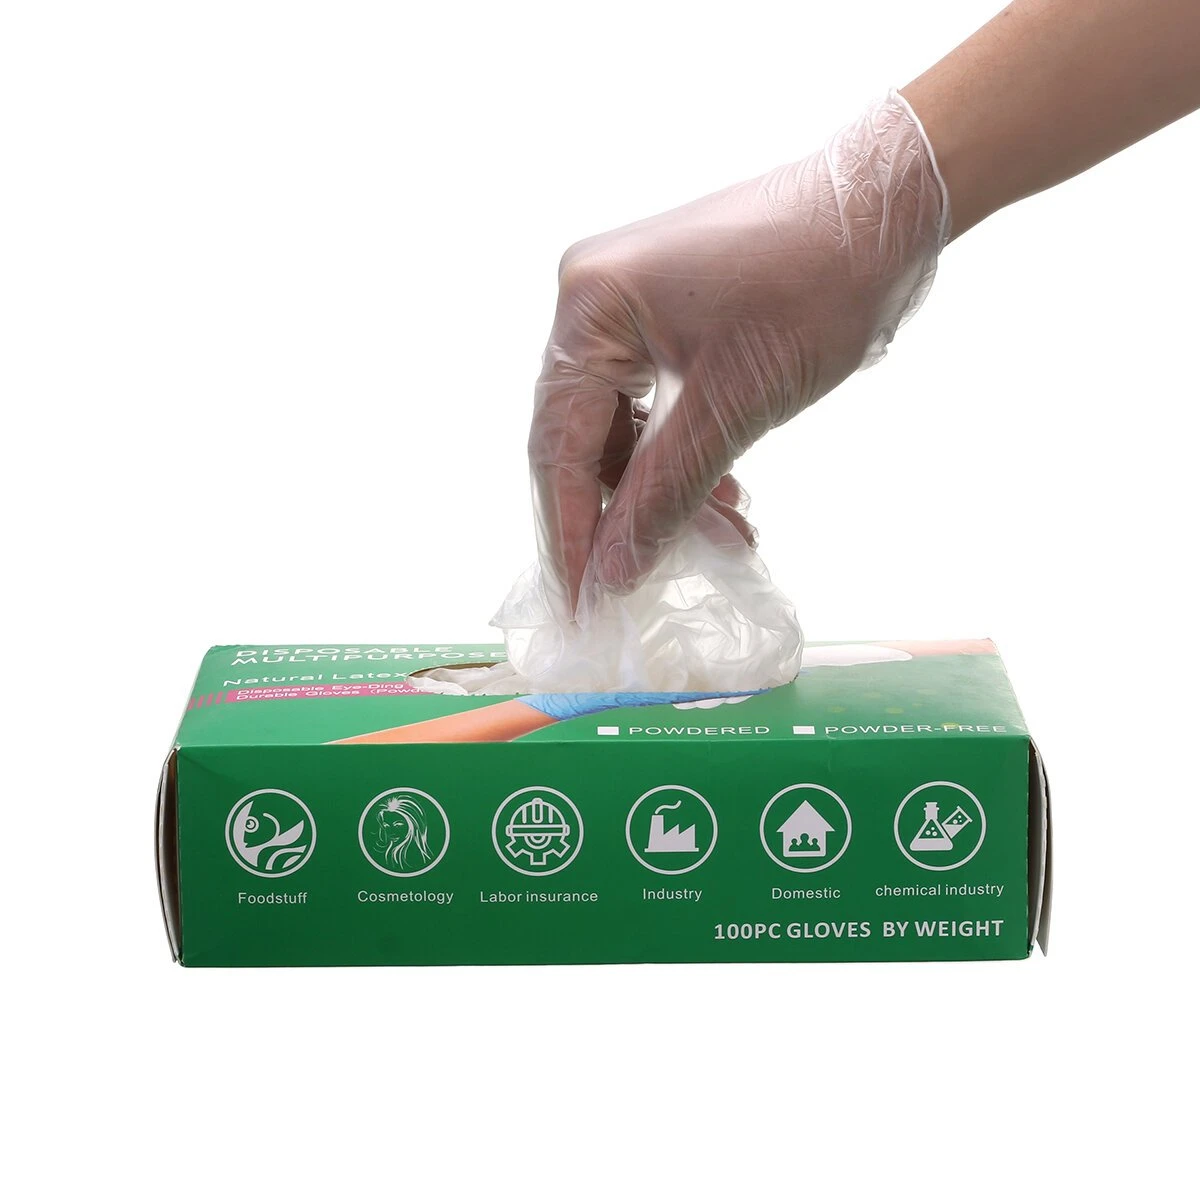 100 Pairs of Slimerence Medical Nitrile Disposable Gloves Powder Free Textured for Foodstuff Chemical Domestic Industry Work